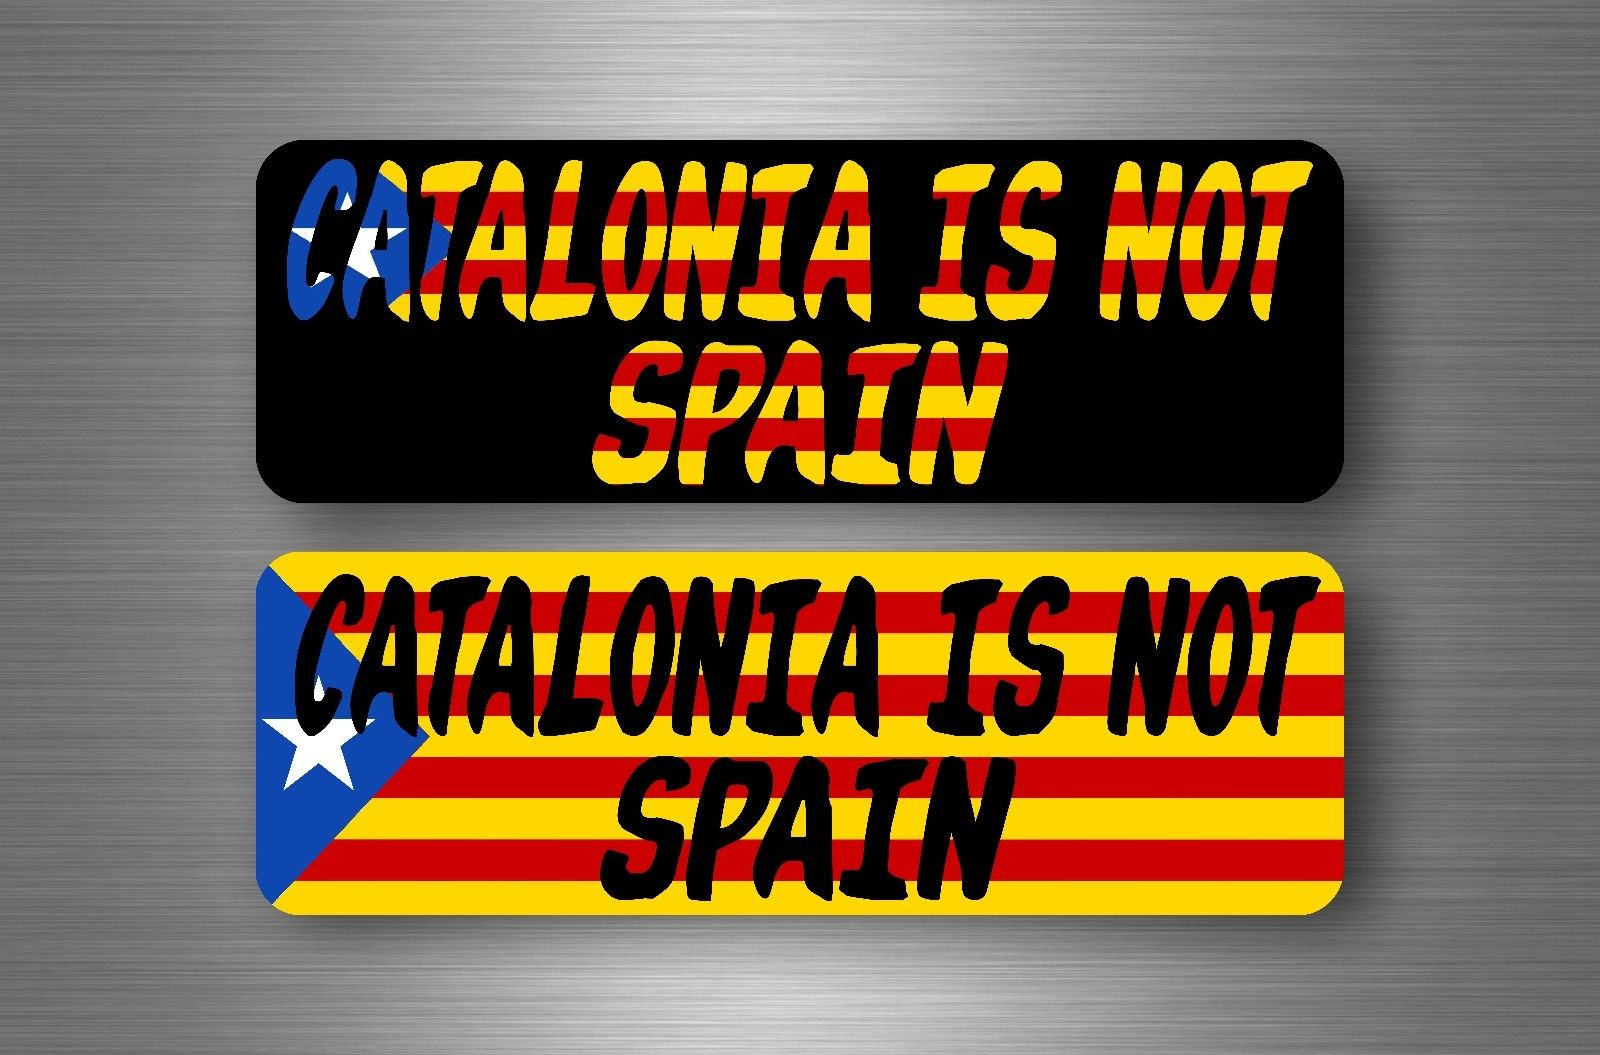 2 Sticker flag catalonia catalunya catalan estrelada free independence not spain